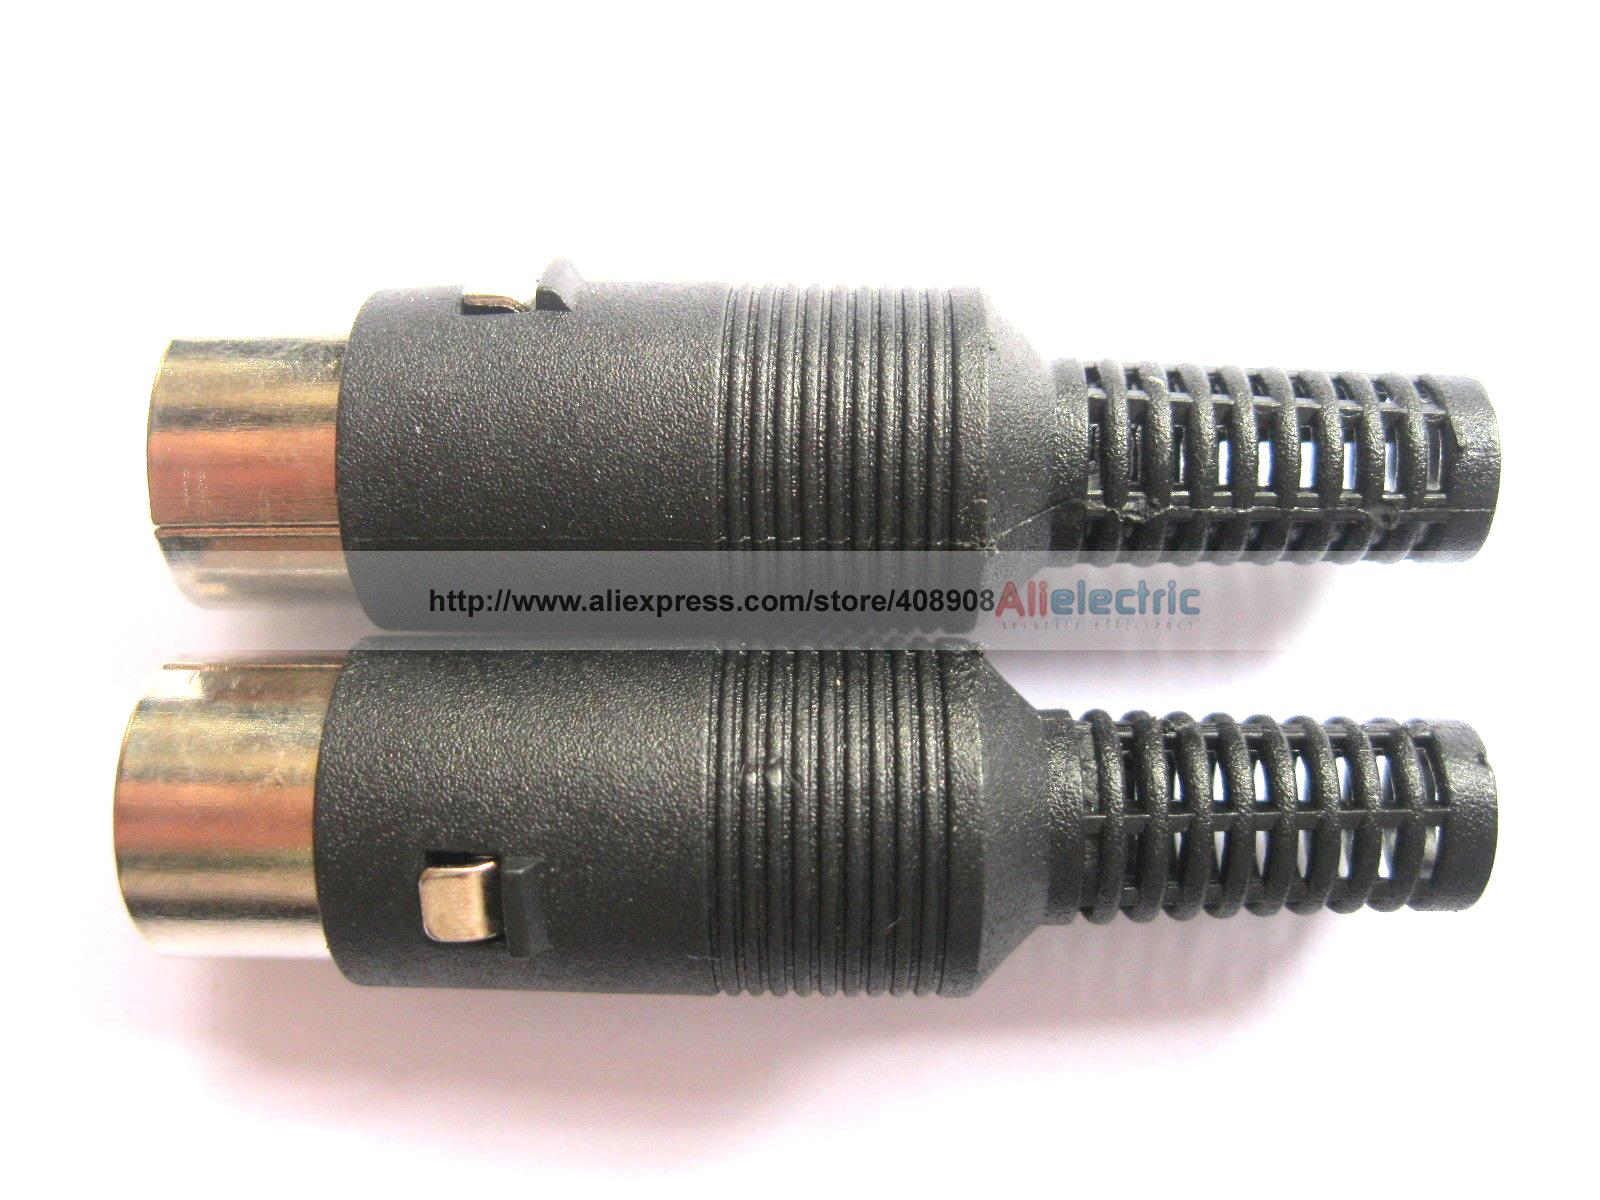 30 Pcs DIN Plug Connector 4 Pin with Plastic Handle